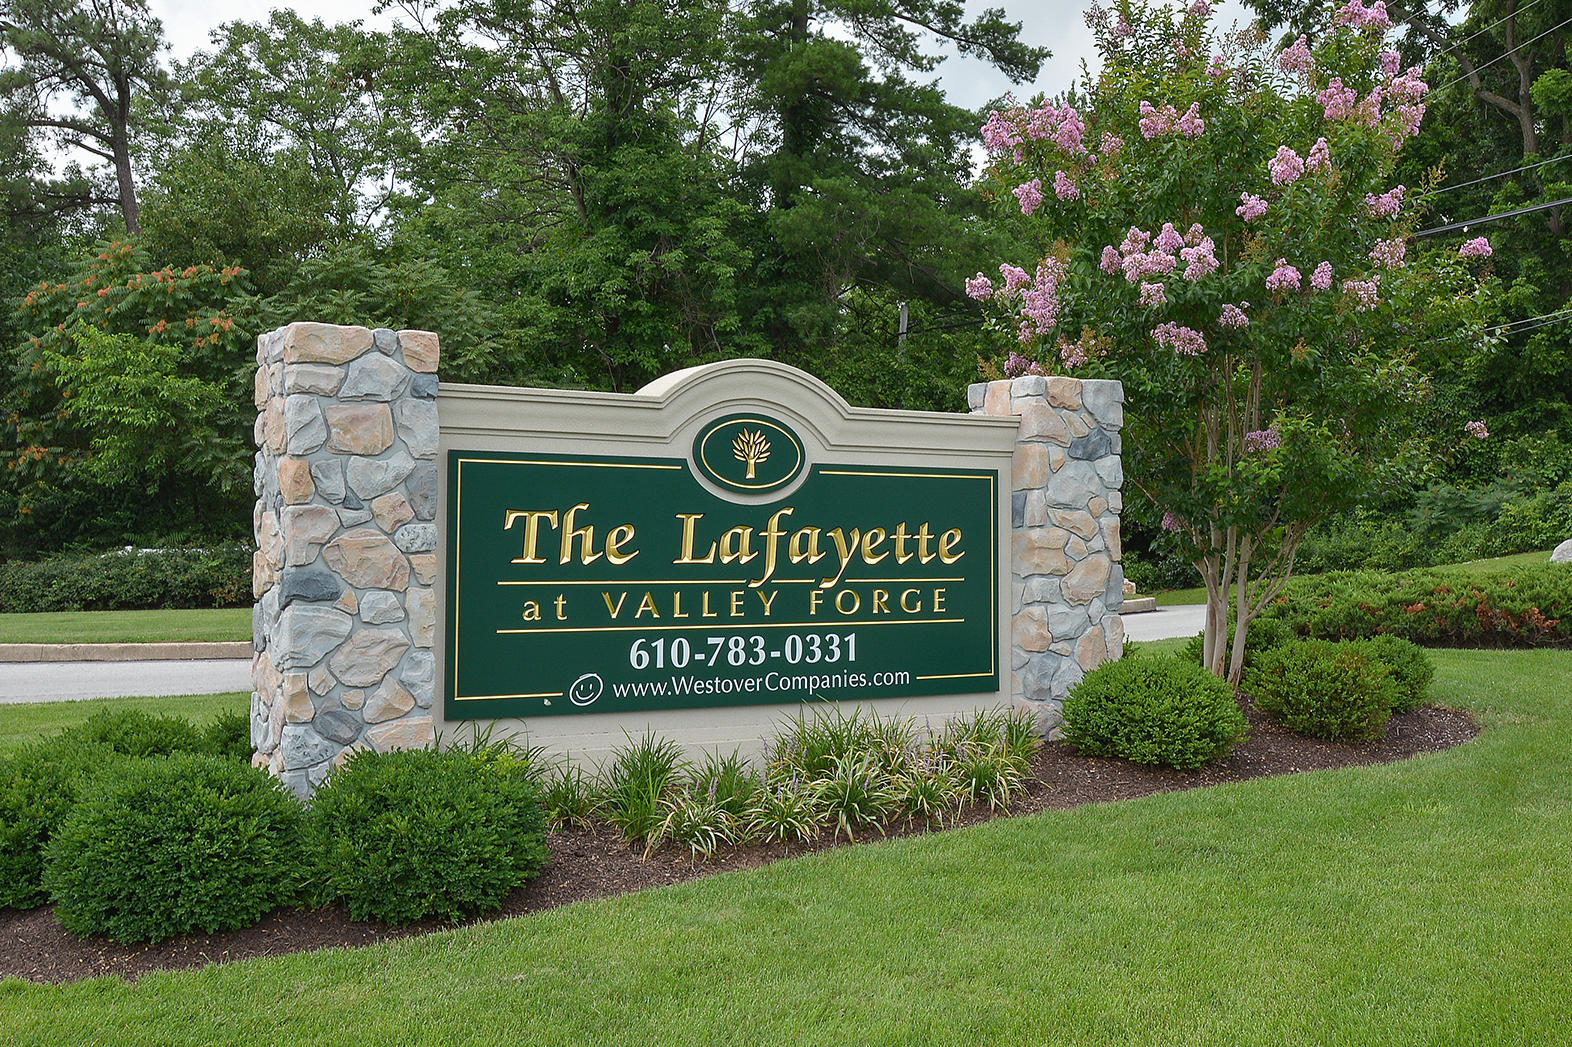 The Lafayette at Valley Forge image 0